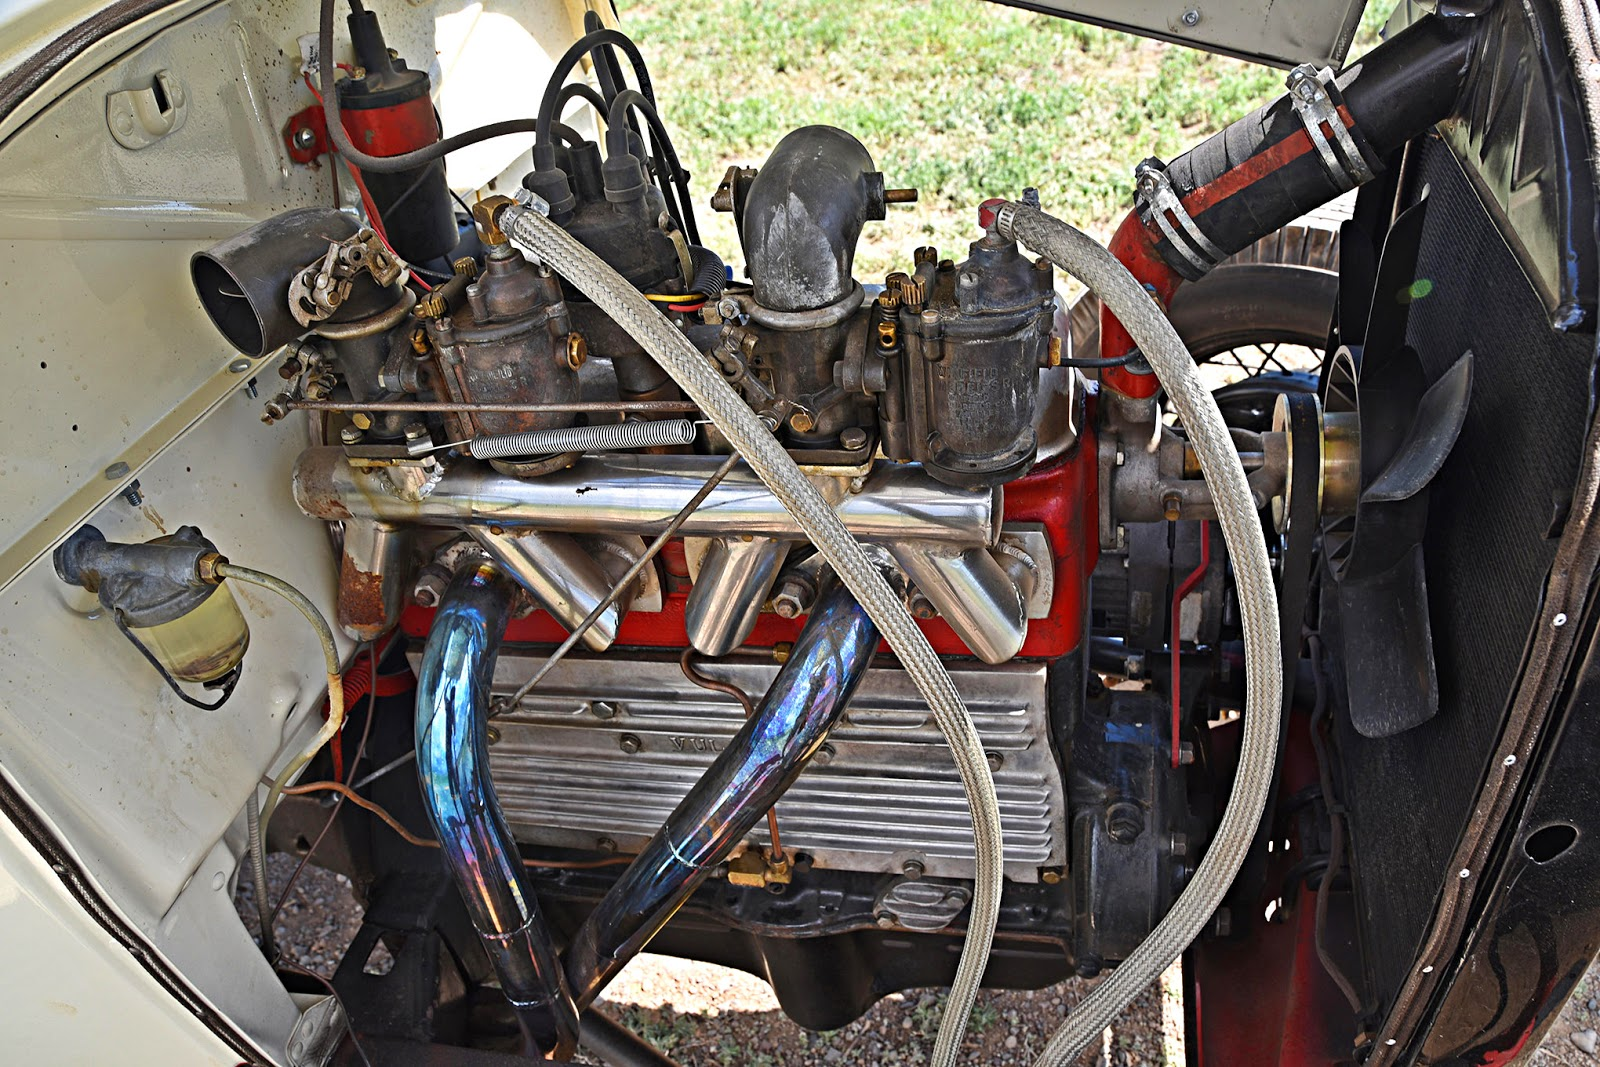 hight resolution of the reverse cam system gives the banger four intakes and two exhausts instead of vice versa kenz even handbuilt the manifold on this motor